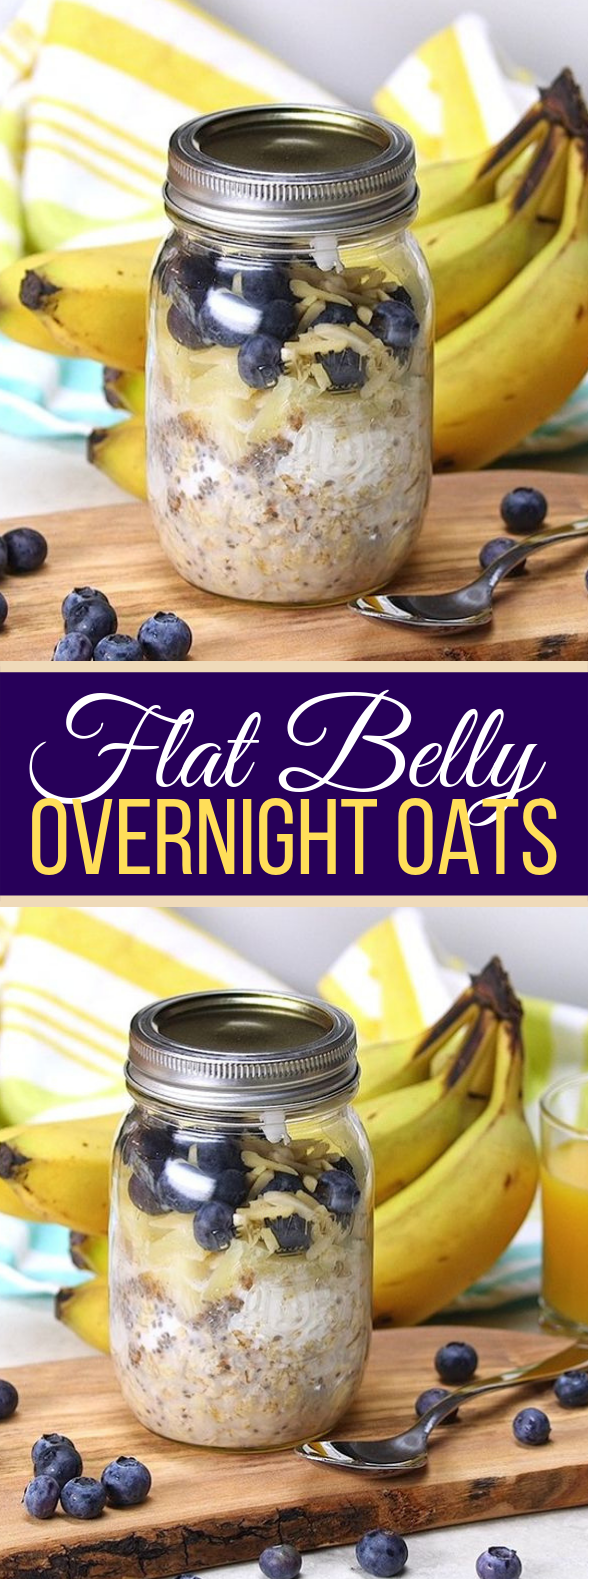 Flat Belly Overnight Oats Will Keep You Trim and Feeling Great #diet #breakfast